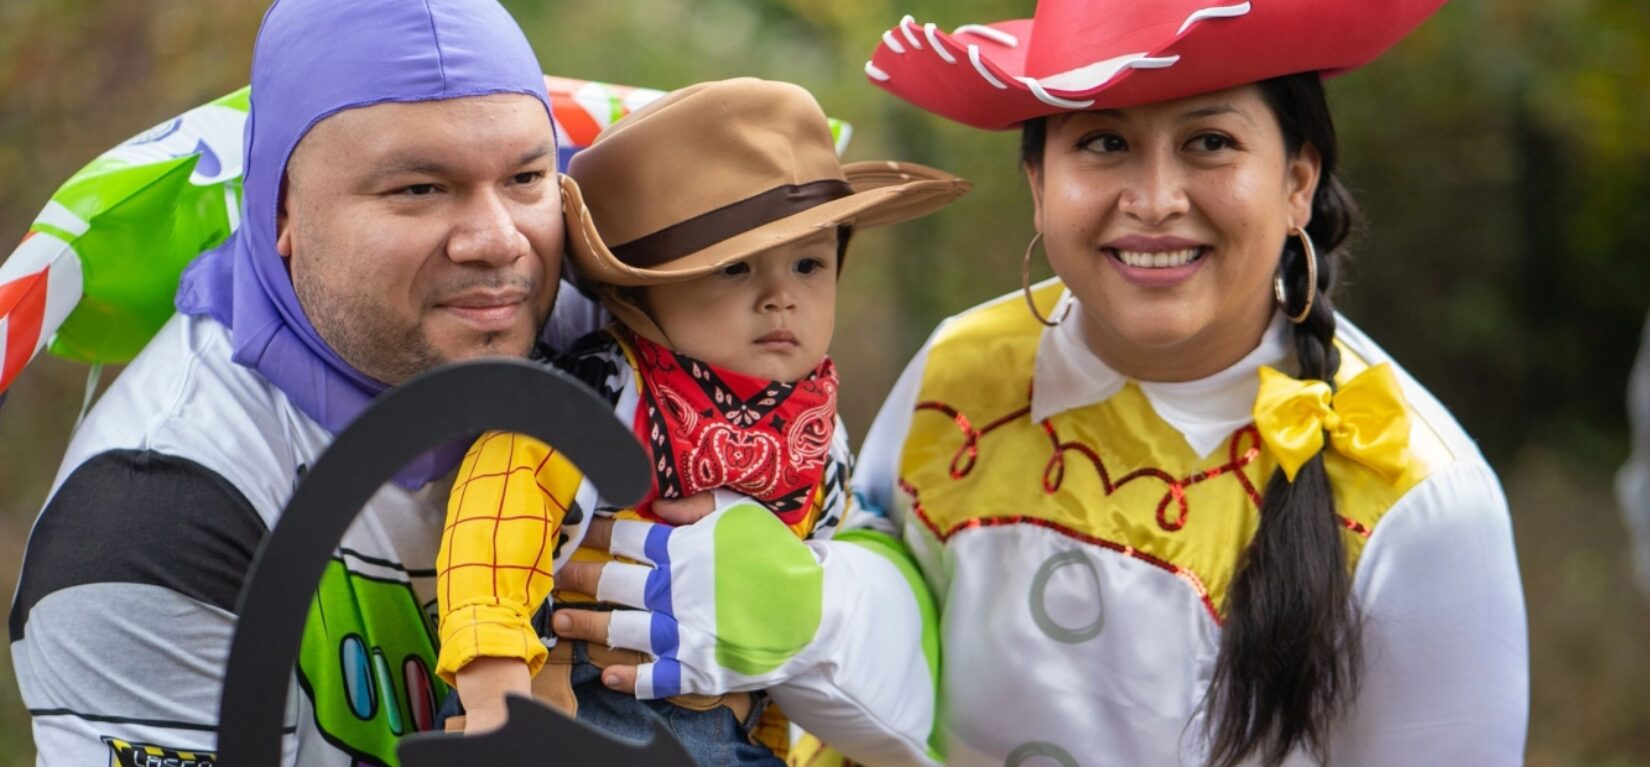 A young family pose in their coordinated Toy Story costumes